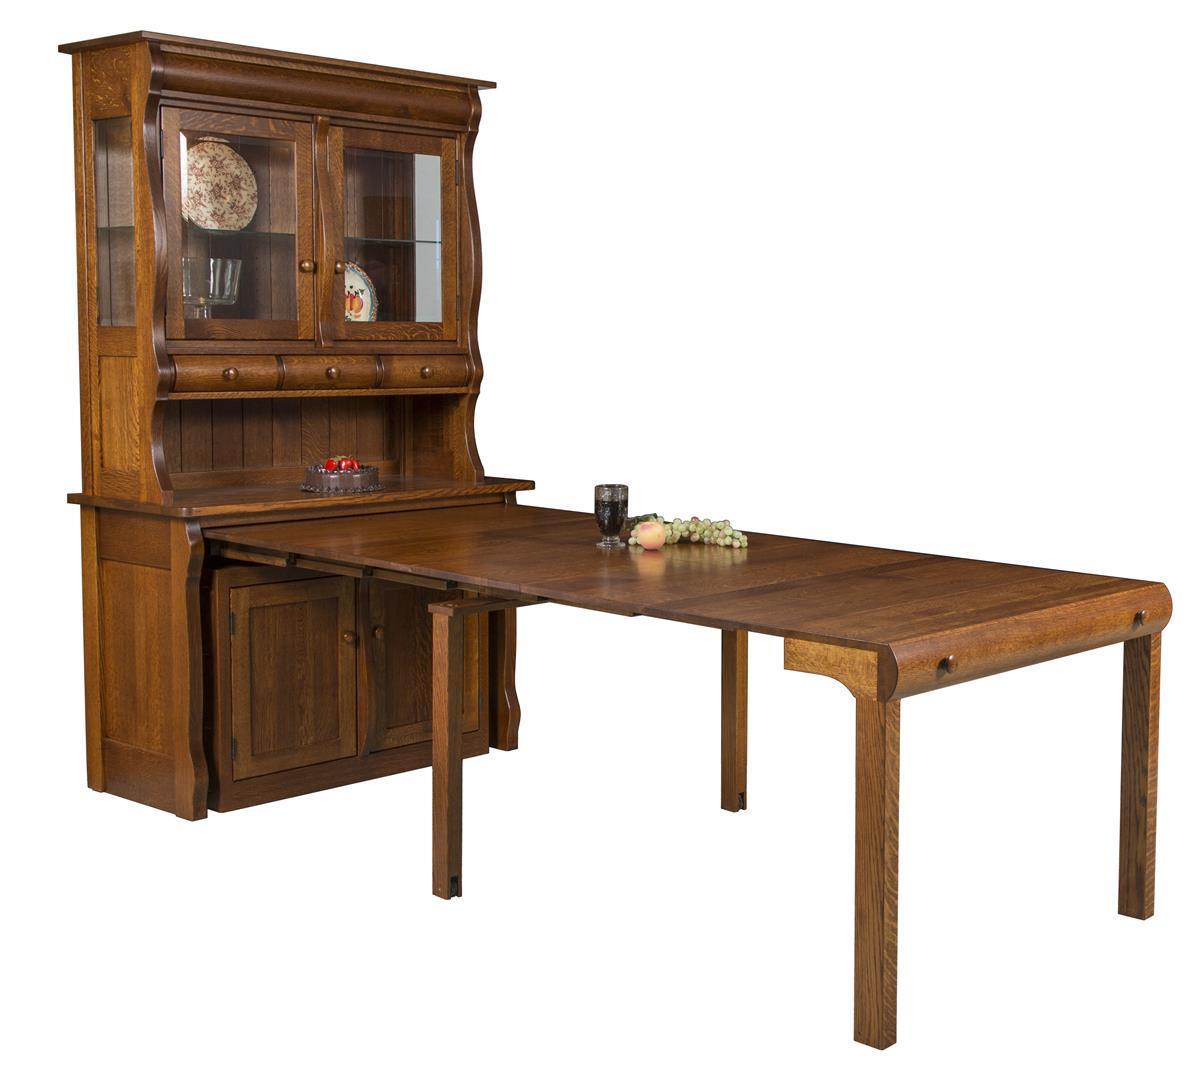 Amish Kitchen: Hampton Frontier Hutch Hideaway Table From DutchCrafters Amish